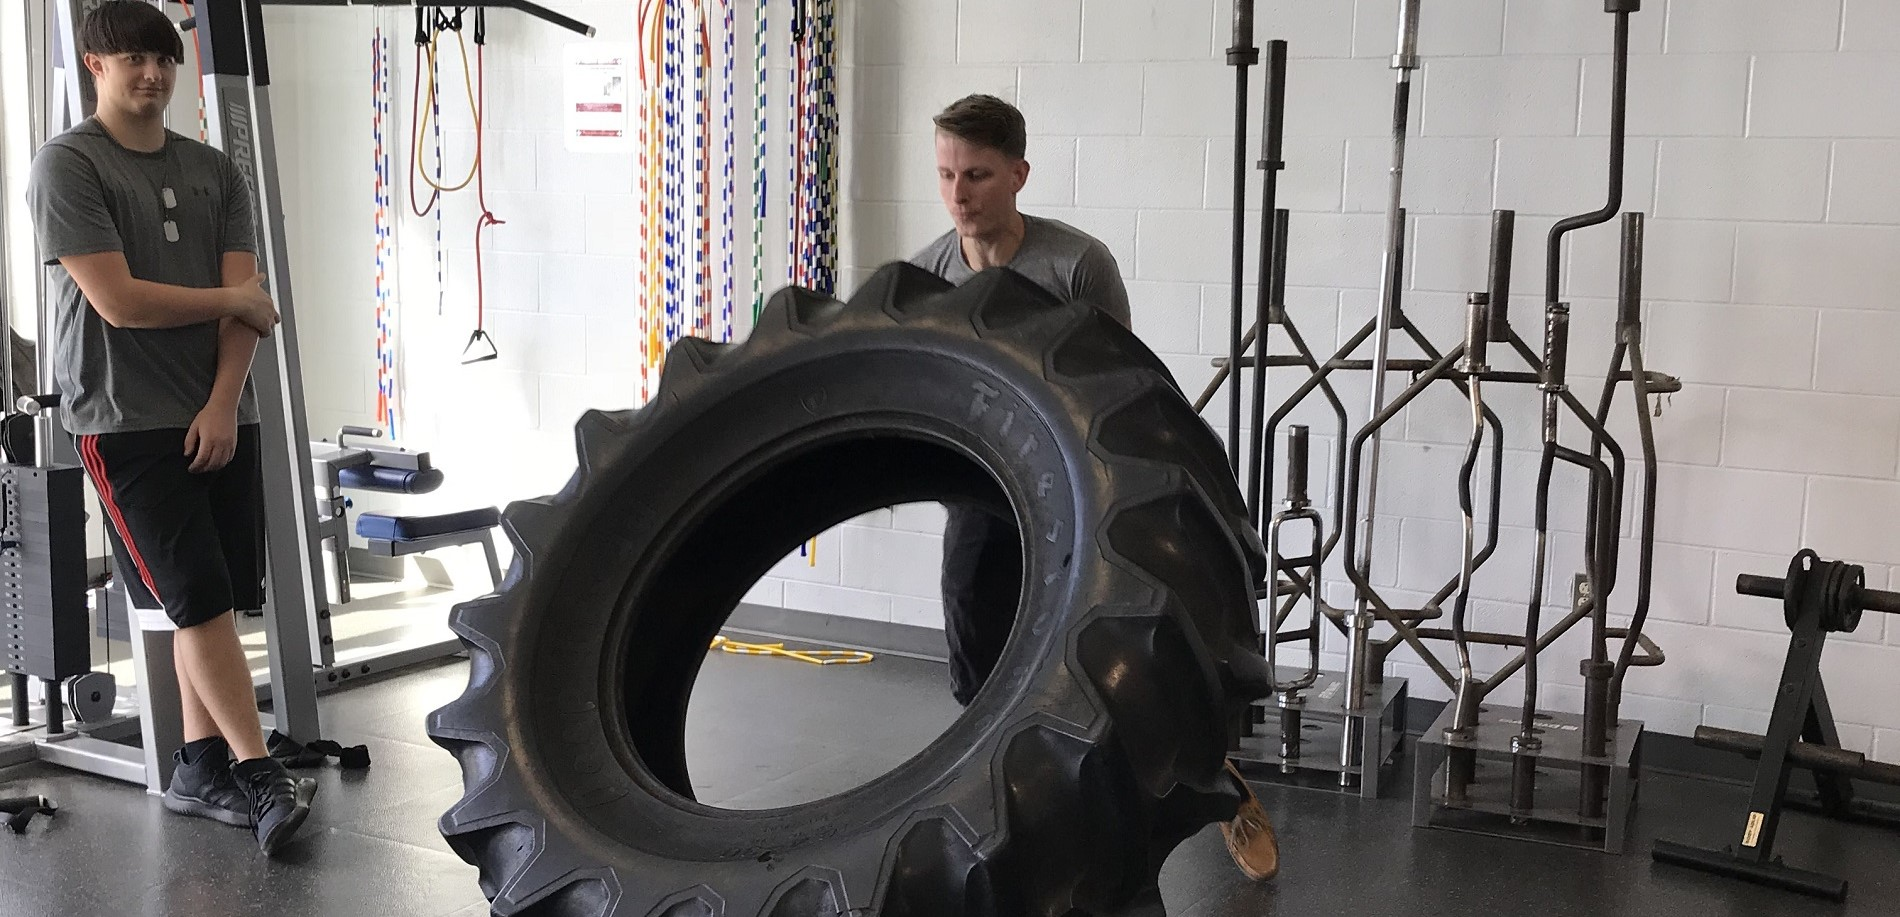 Tire Flipping in the Weight Room